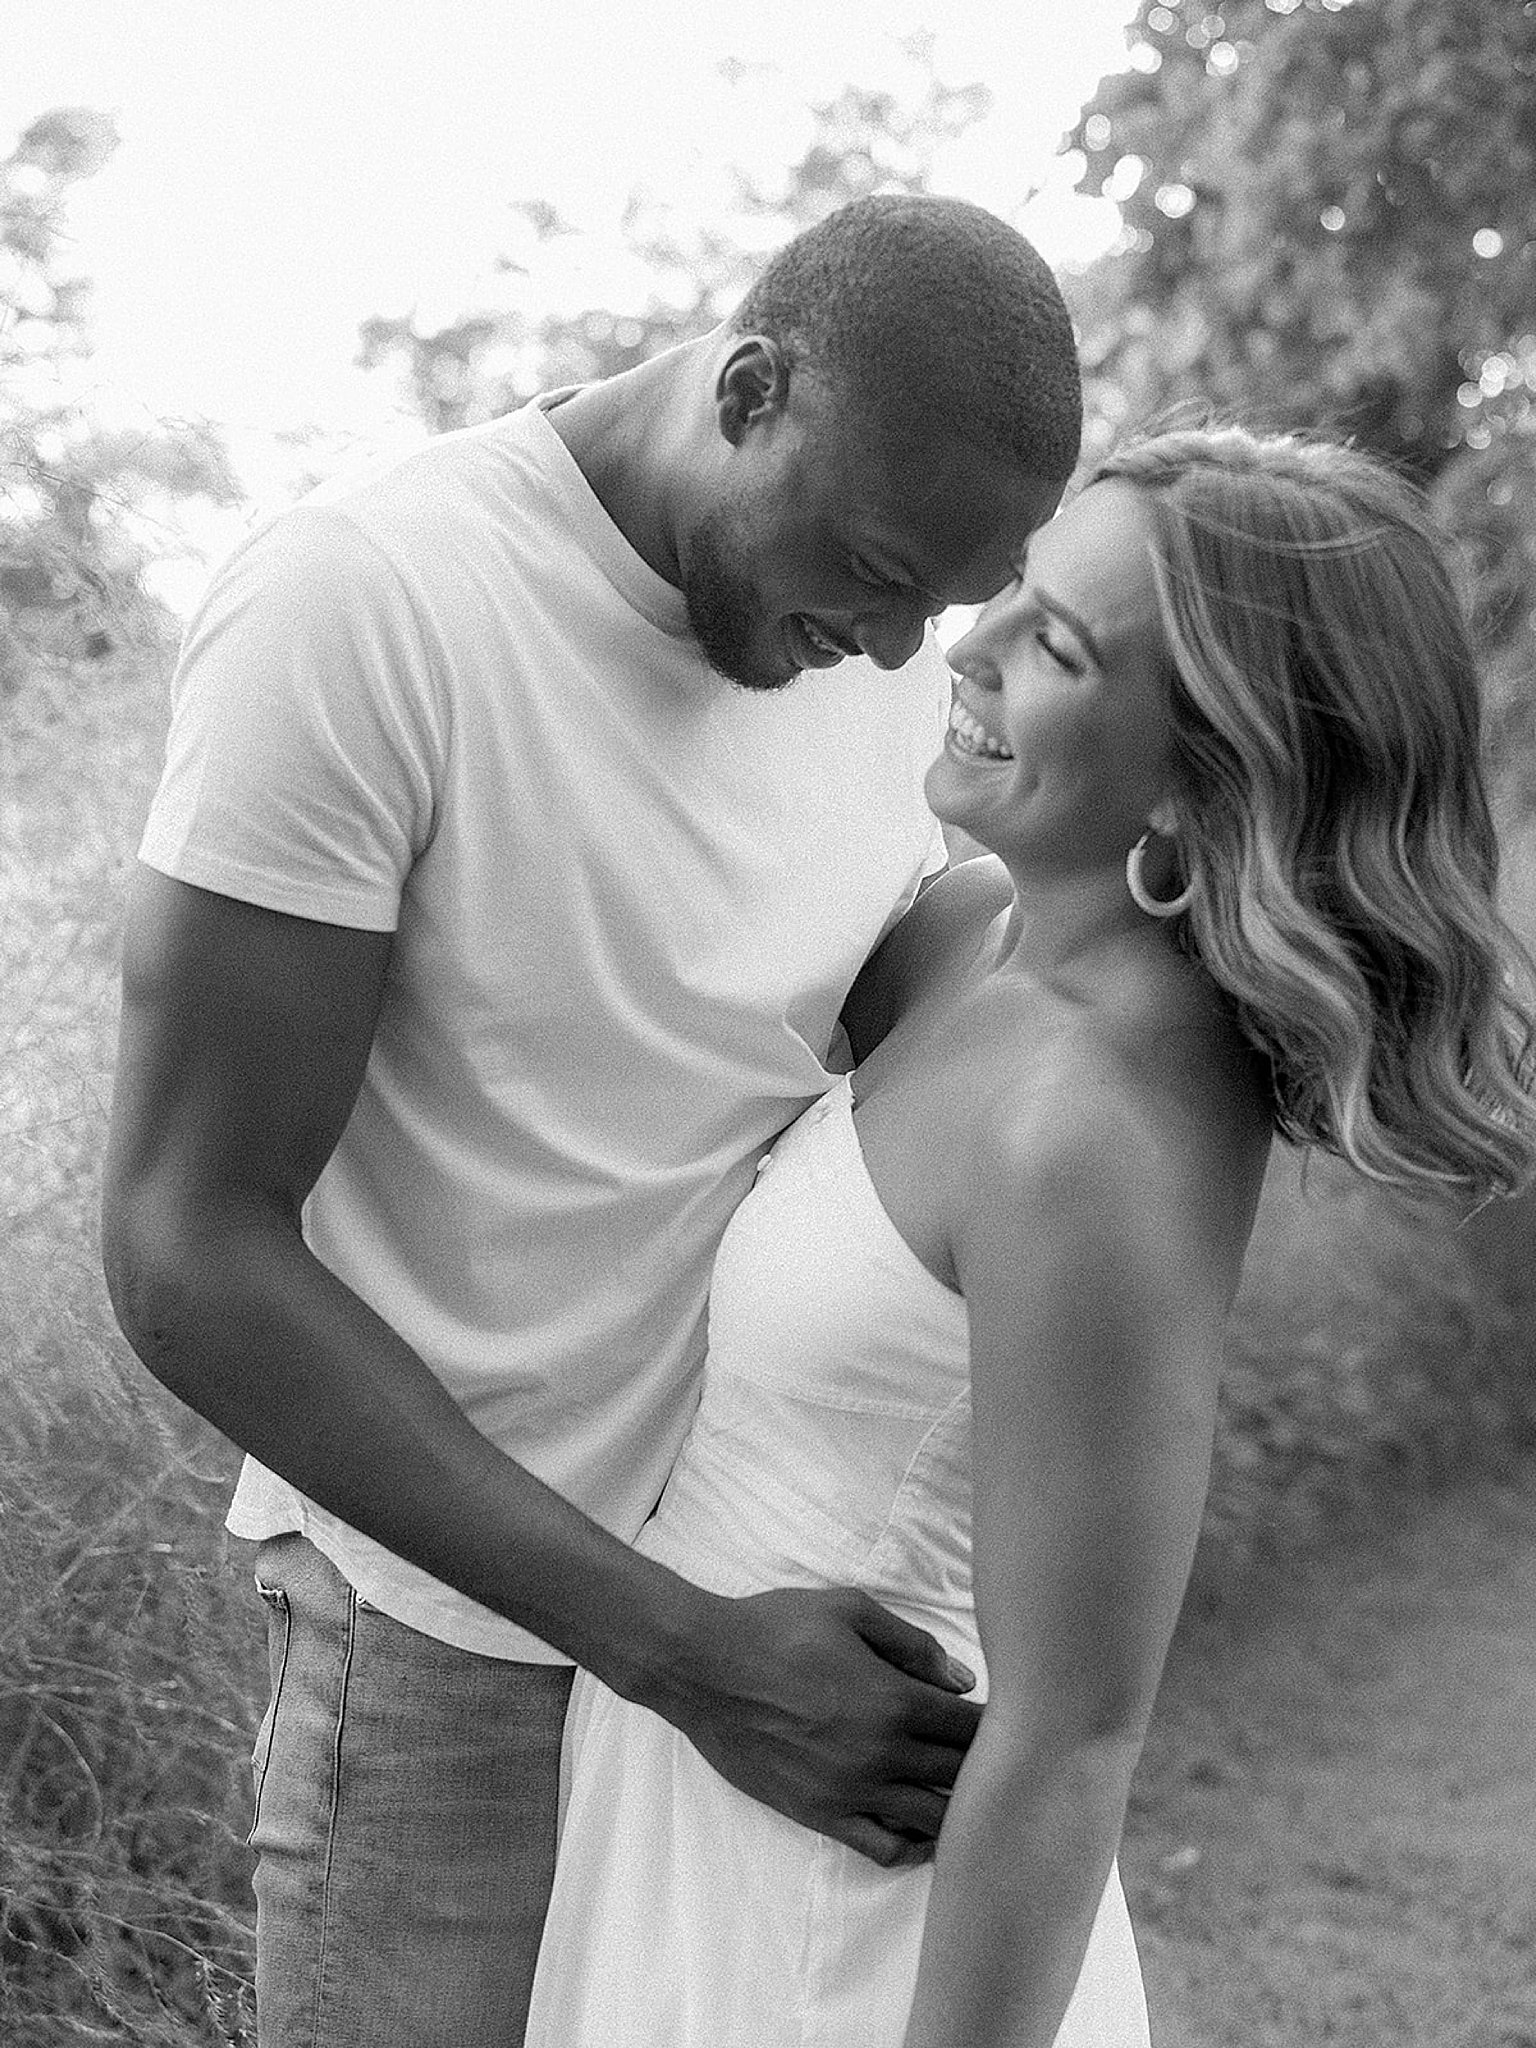 Willow Creek Winery Cape May New Jersey Engagement Session Photography by Magdalena Studios JessieLandry 0009